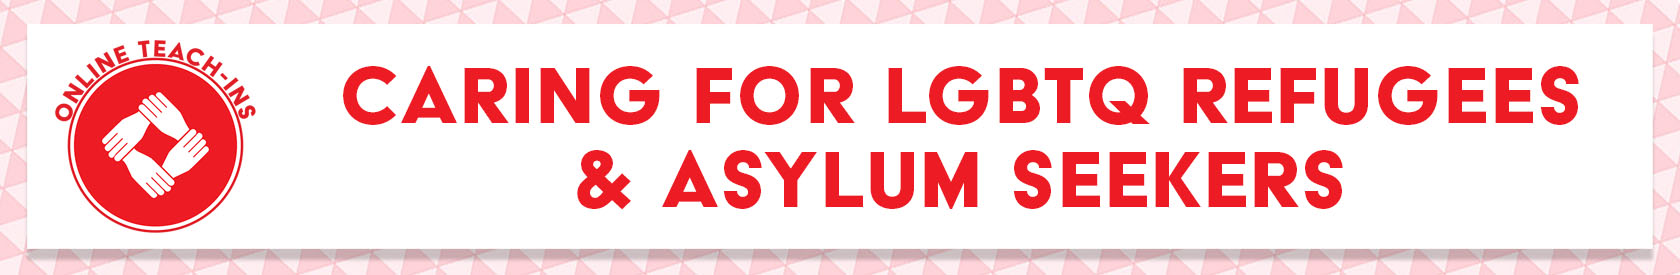 Caring for LGBTQIA+ Refugees and Asylum Seekers